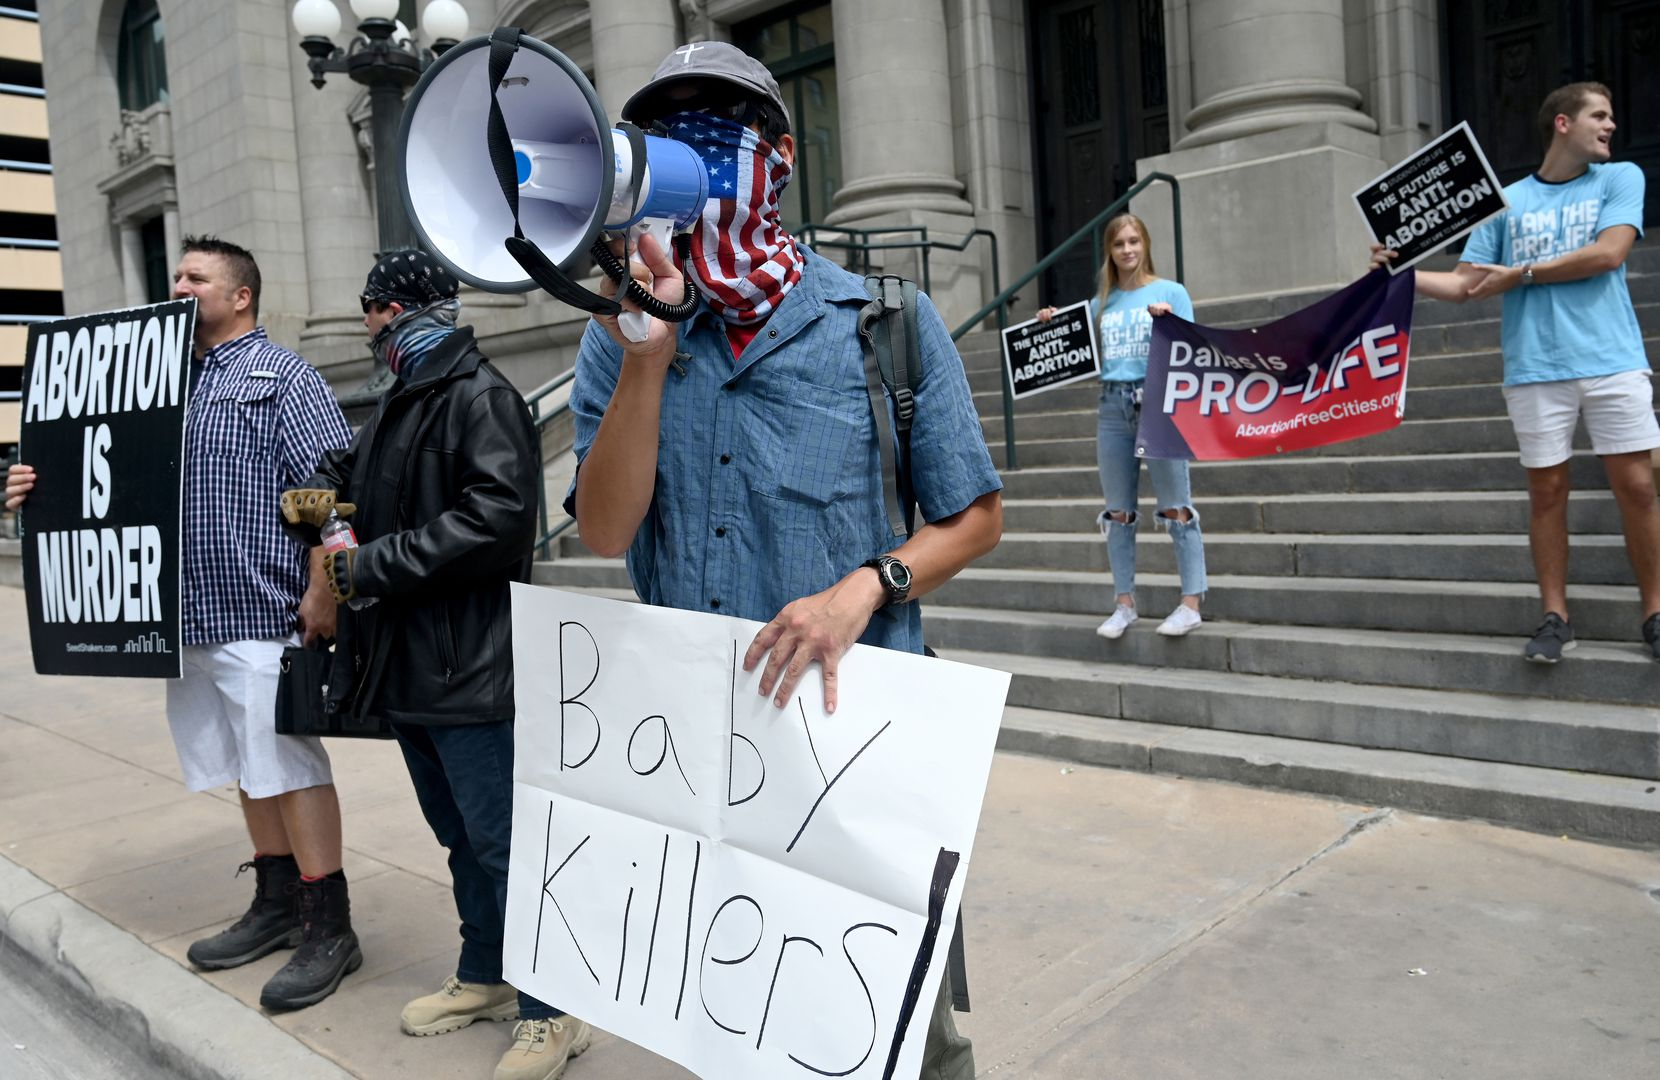 Daniel Lee, wielding a bullhorn in front of the Dallas Municipal Building, was among counter-protesters who let abortion-rights demonstrators know their views on the issue.